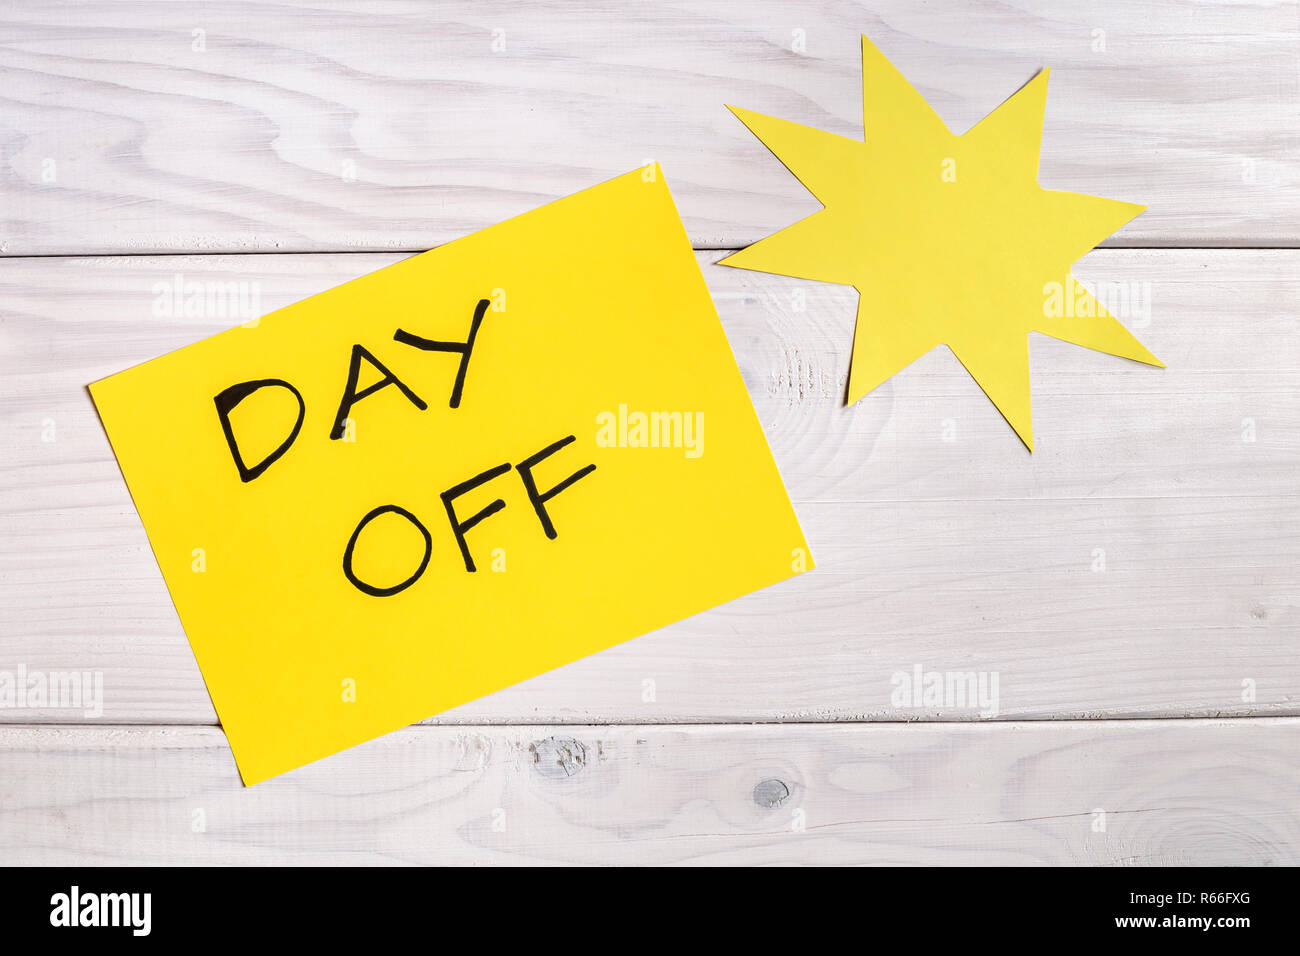 Text day off and sun shape on wooden table. - Stock Image